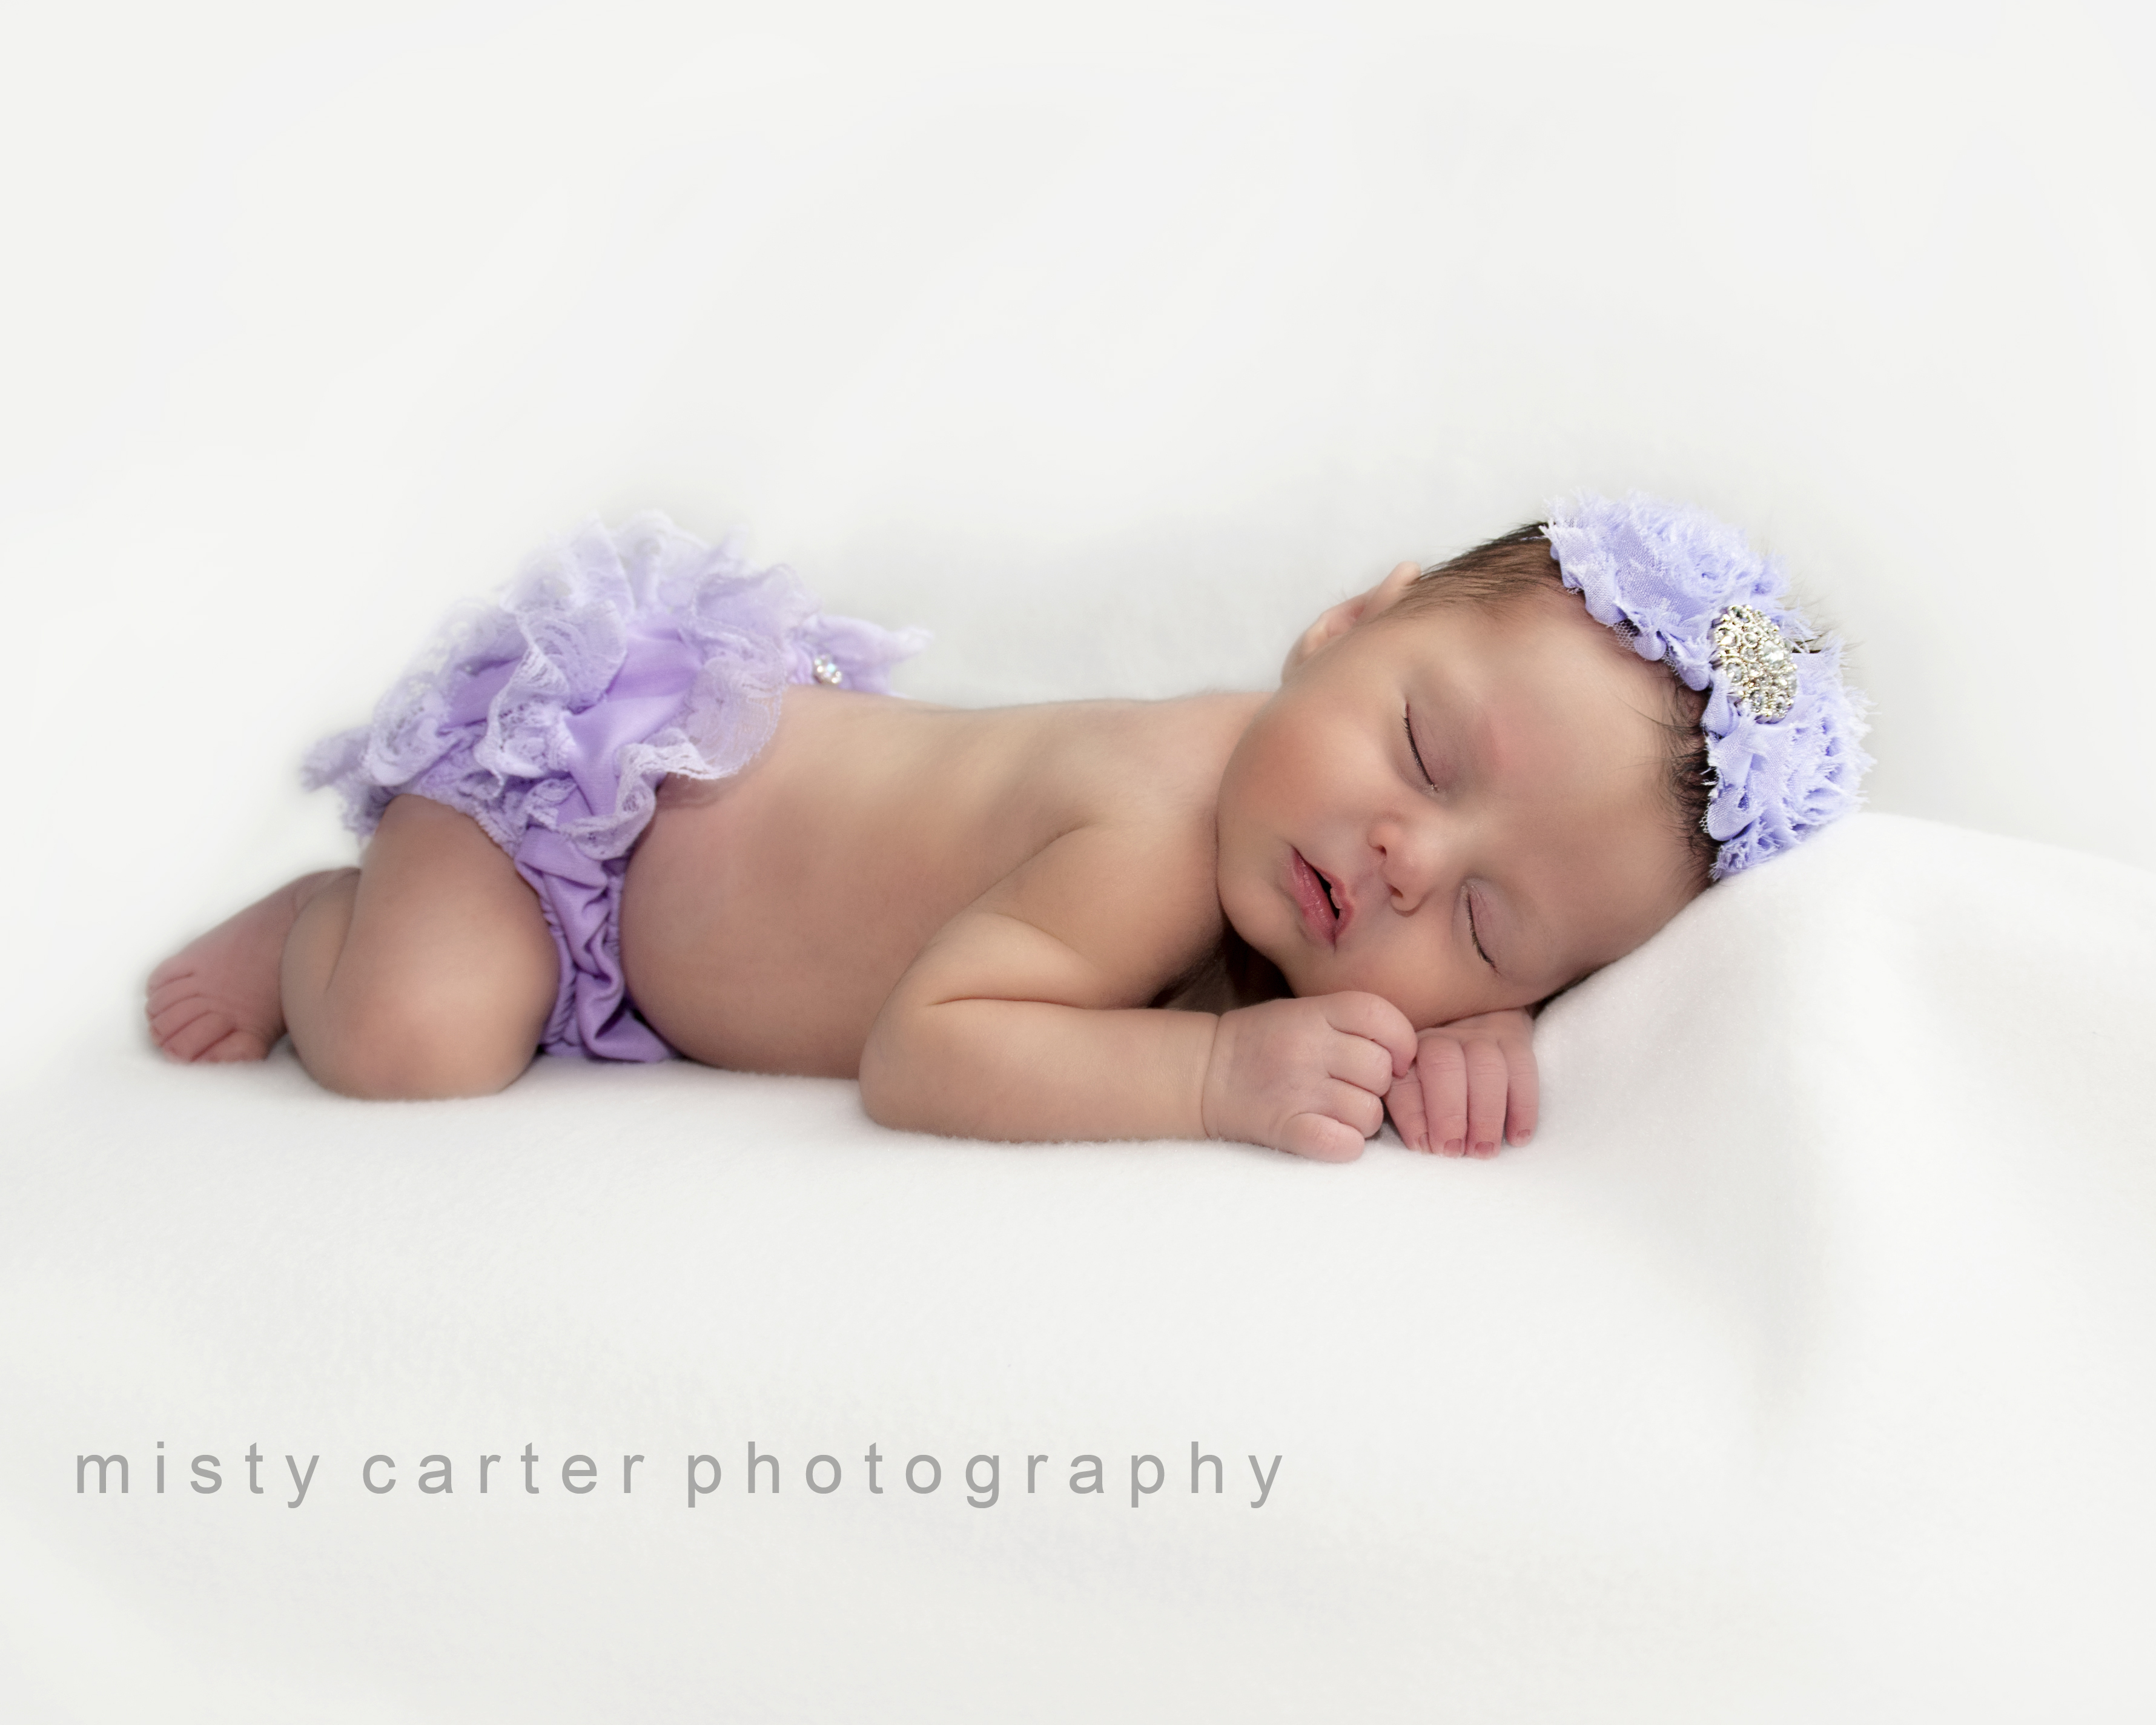 """""""This is my favorite image, my newborn baby girl all curled up on her belly. She was really fussy at the beginning of our photo shoot, but Misty was so patient and soothing that she eventually calmed down and gave us beautiful pictures. As a new mom, I was stressed before the photo shoot and just wanted my baby to cooperate. Misty was such a calming presence and took all the pressure off me. I will cherish the pictures we got that day forever."""""""